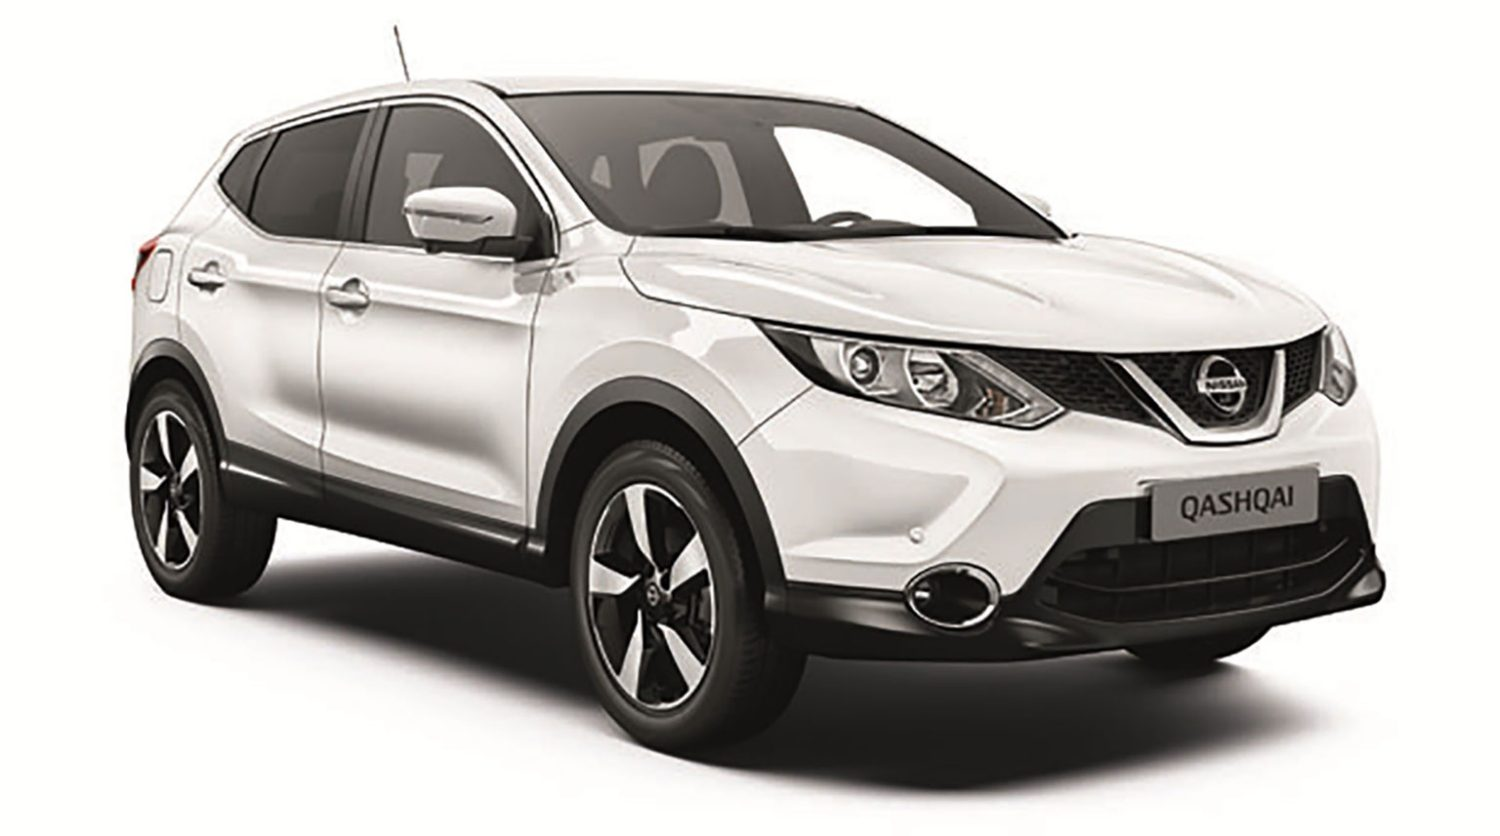 Nissan Qashqai Business+ - 3/4 front view